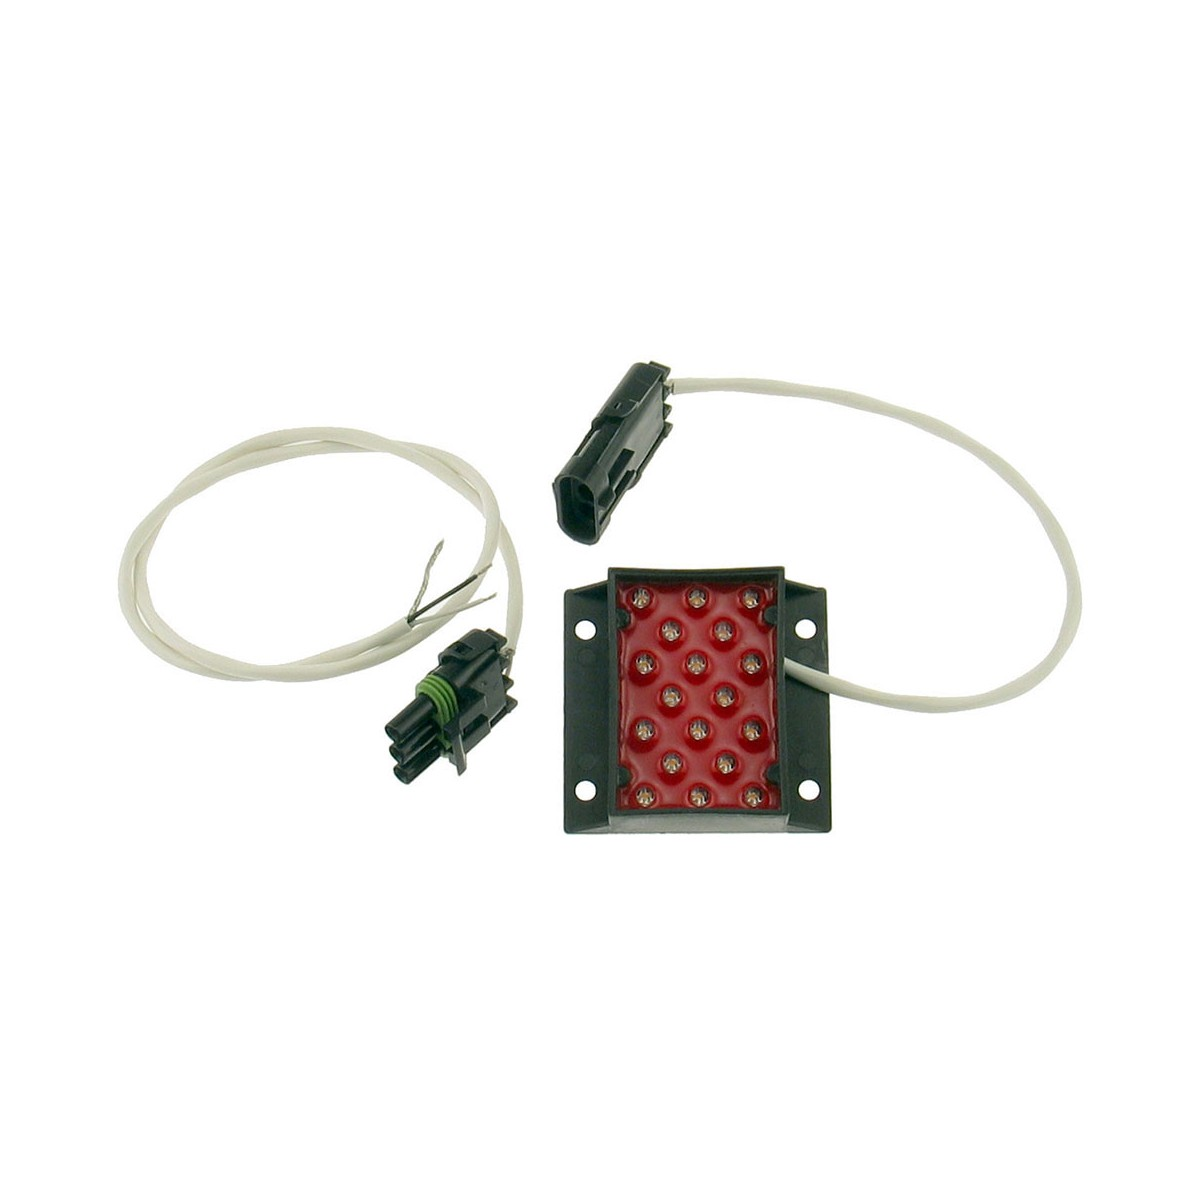 Afterburner Fia Rain Brake Light With Harness Weather Pack Connector Wiring For Lights